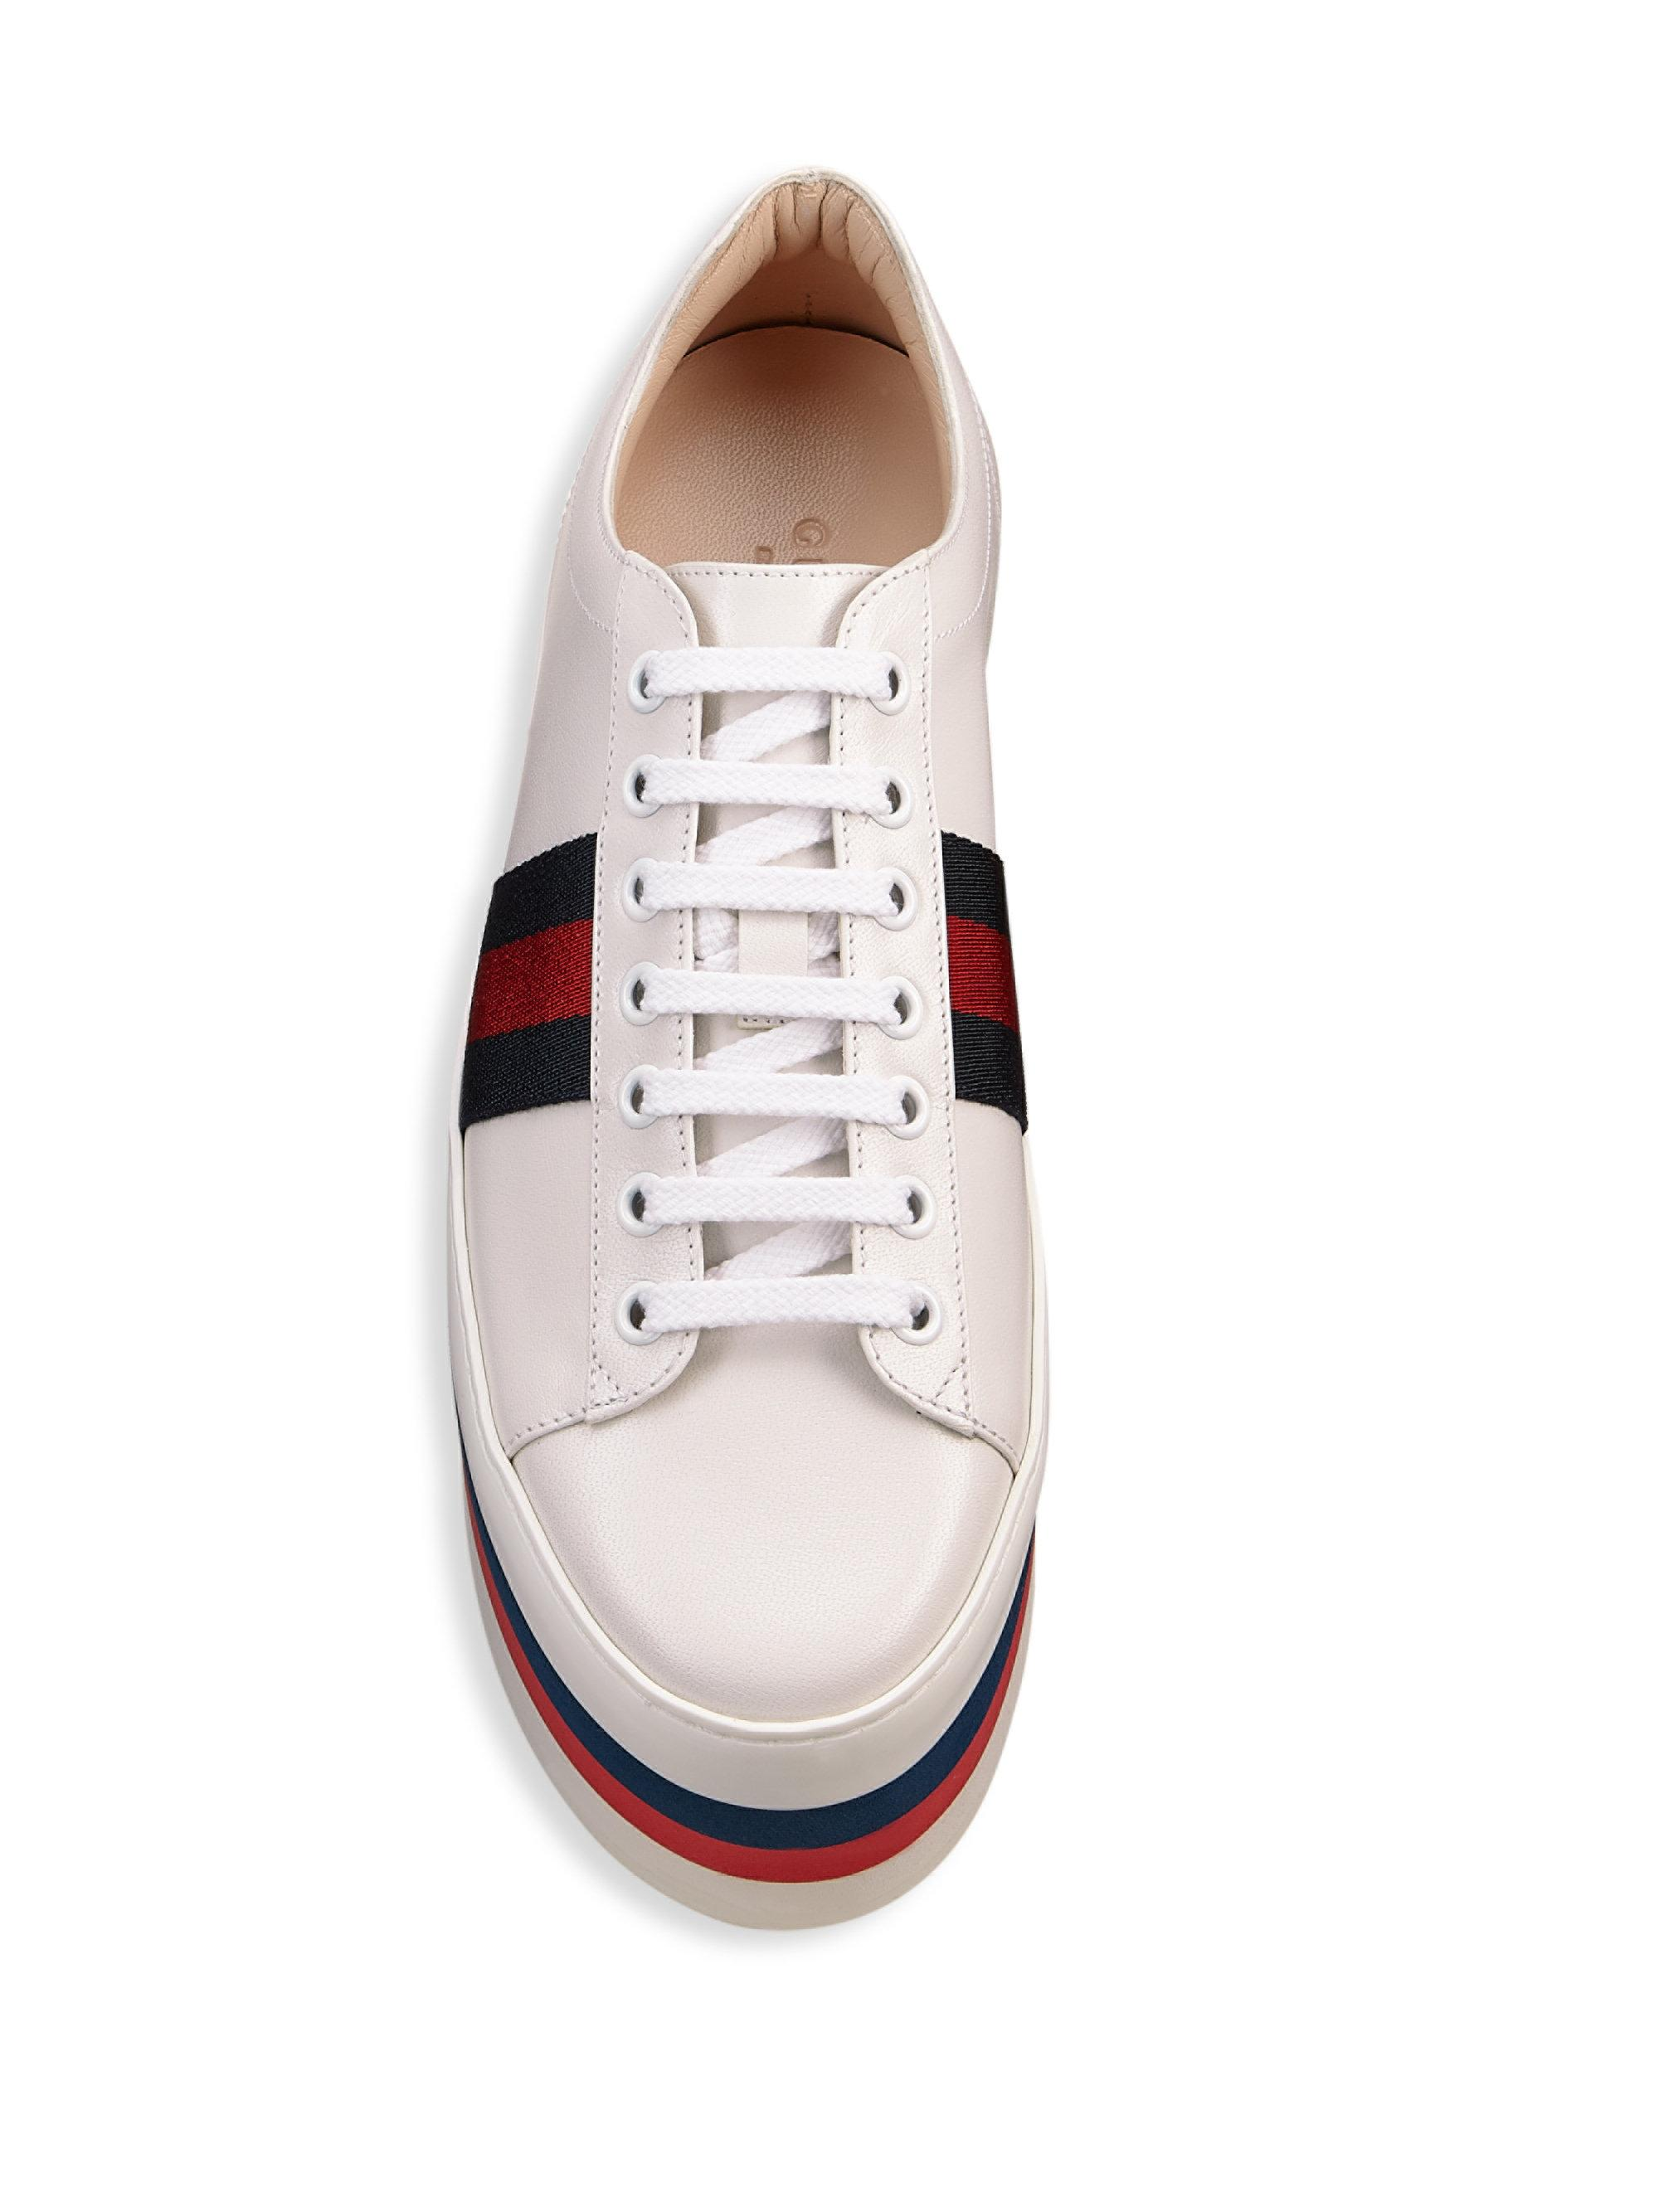 402f452007a Lyst - Gucci Peggy Leather Rainbow Platform Sneakers in White